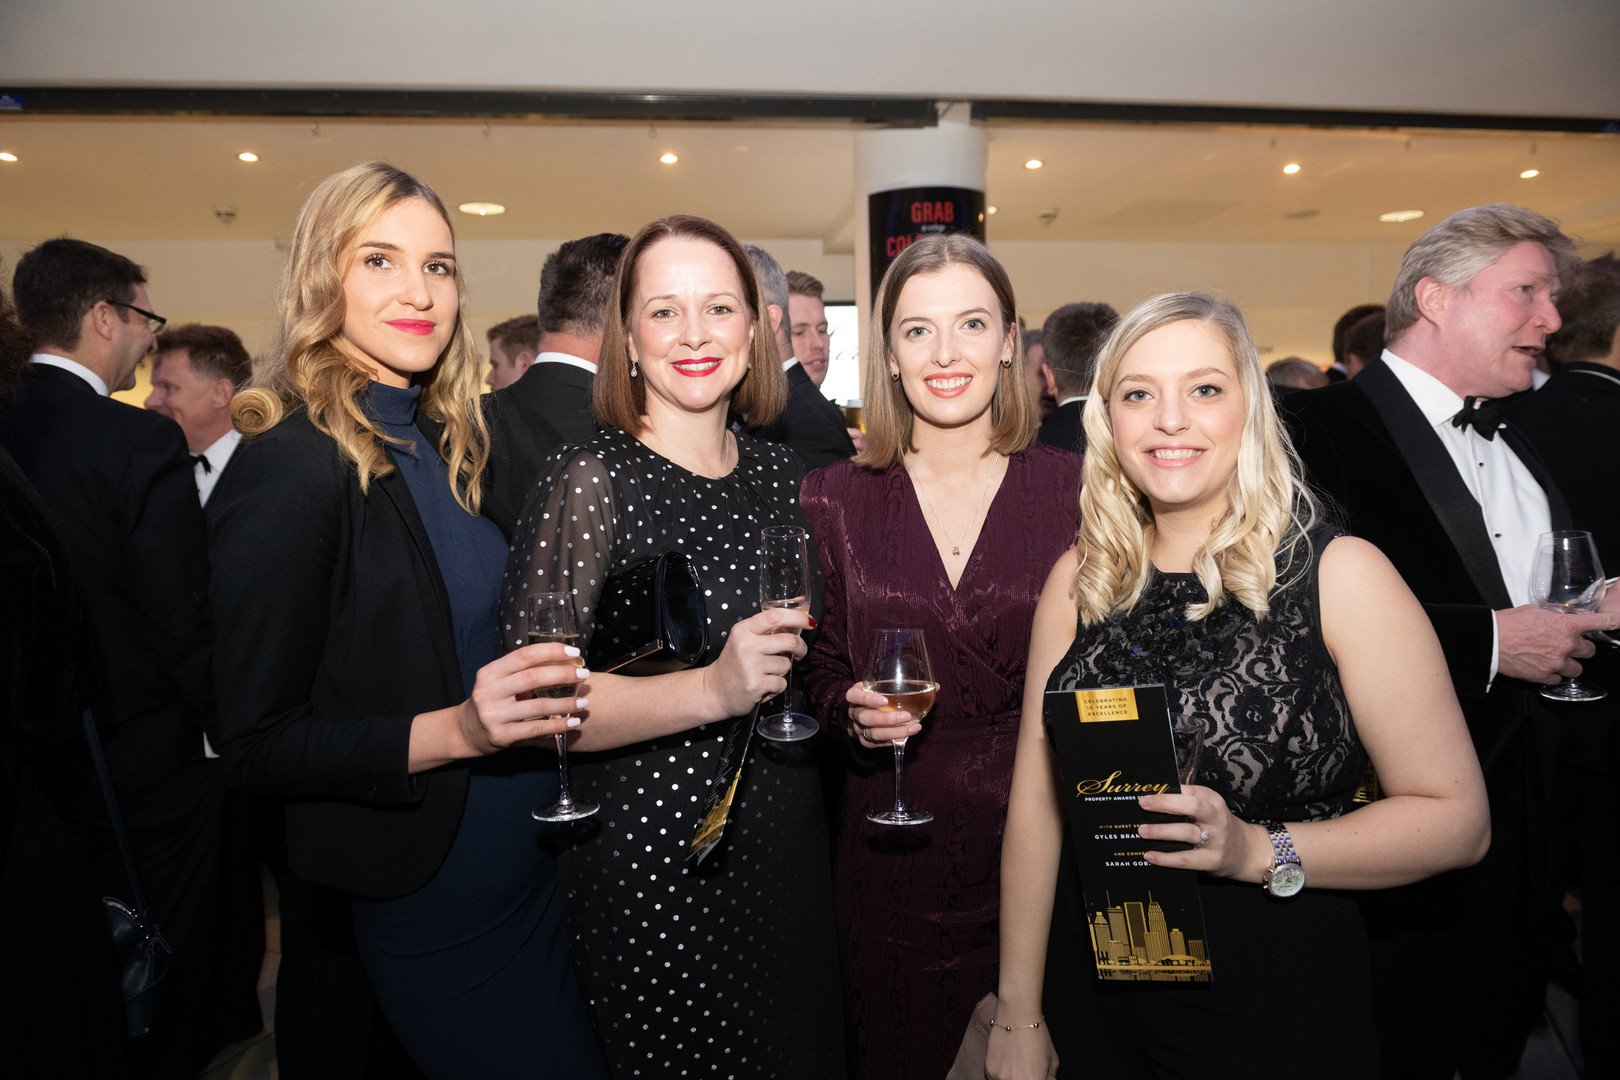 SurreyPropertyAwards_Nov2019_184.jpg